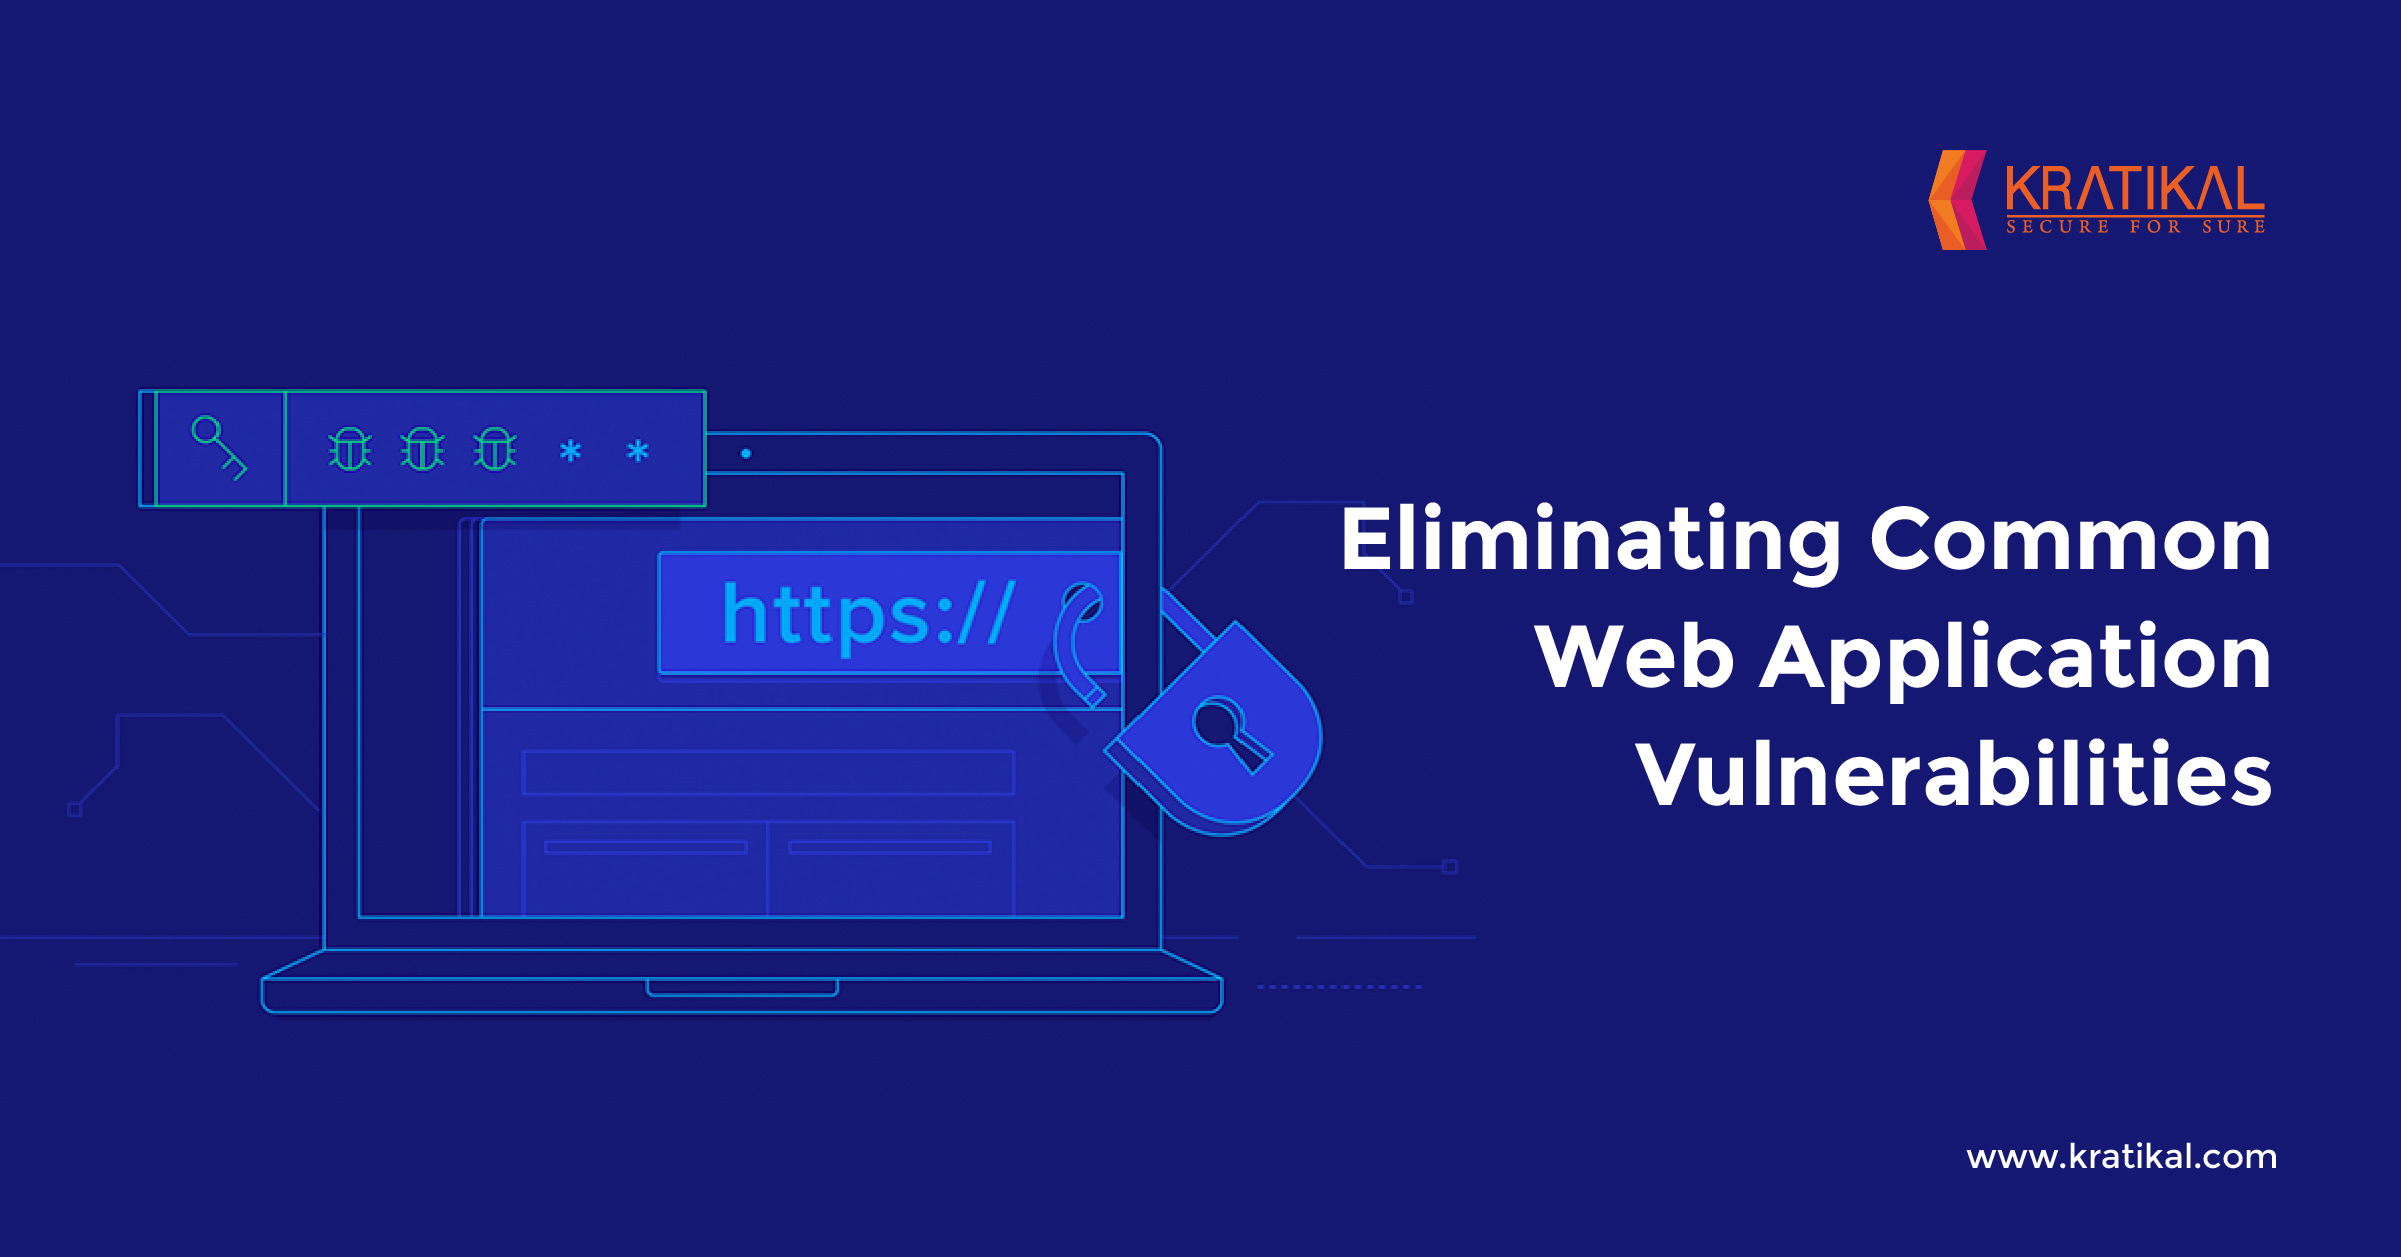 Eliminating Common Web Application Vulnerabilities